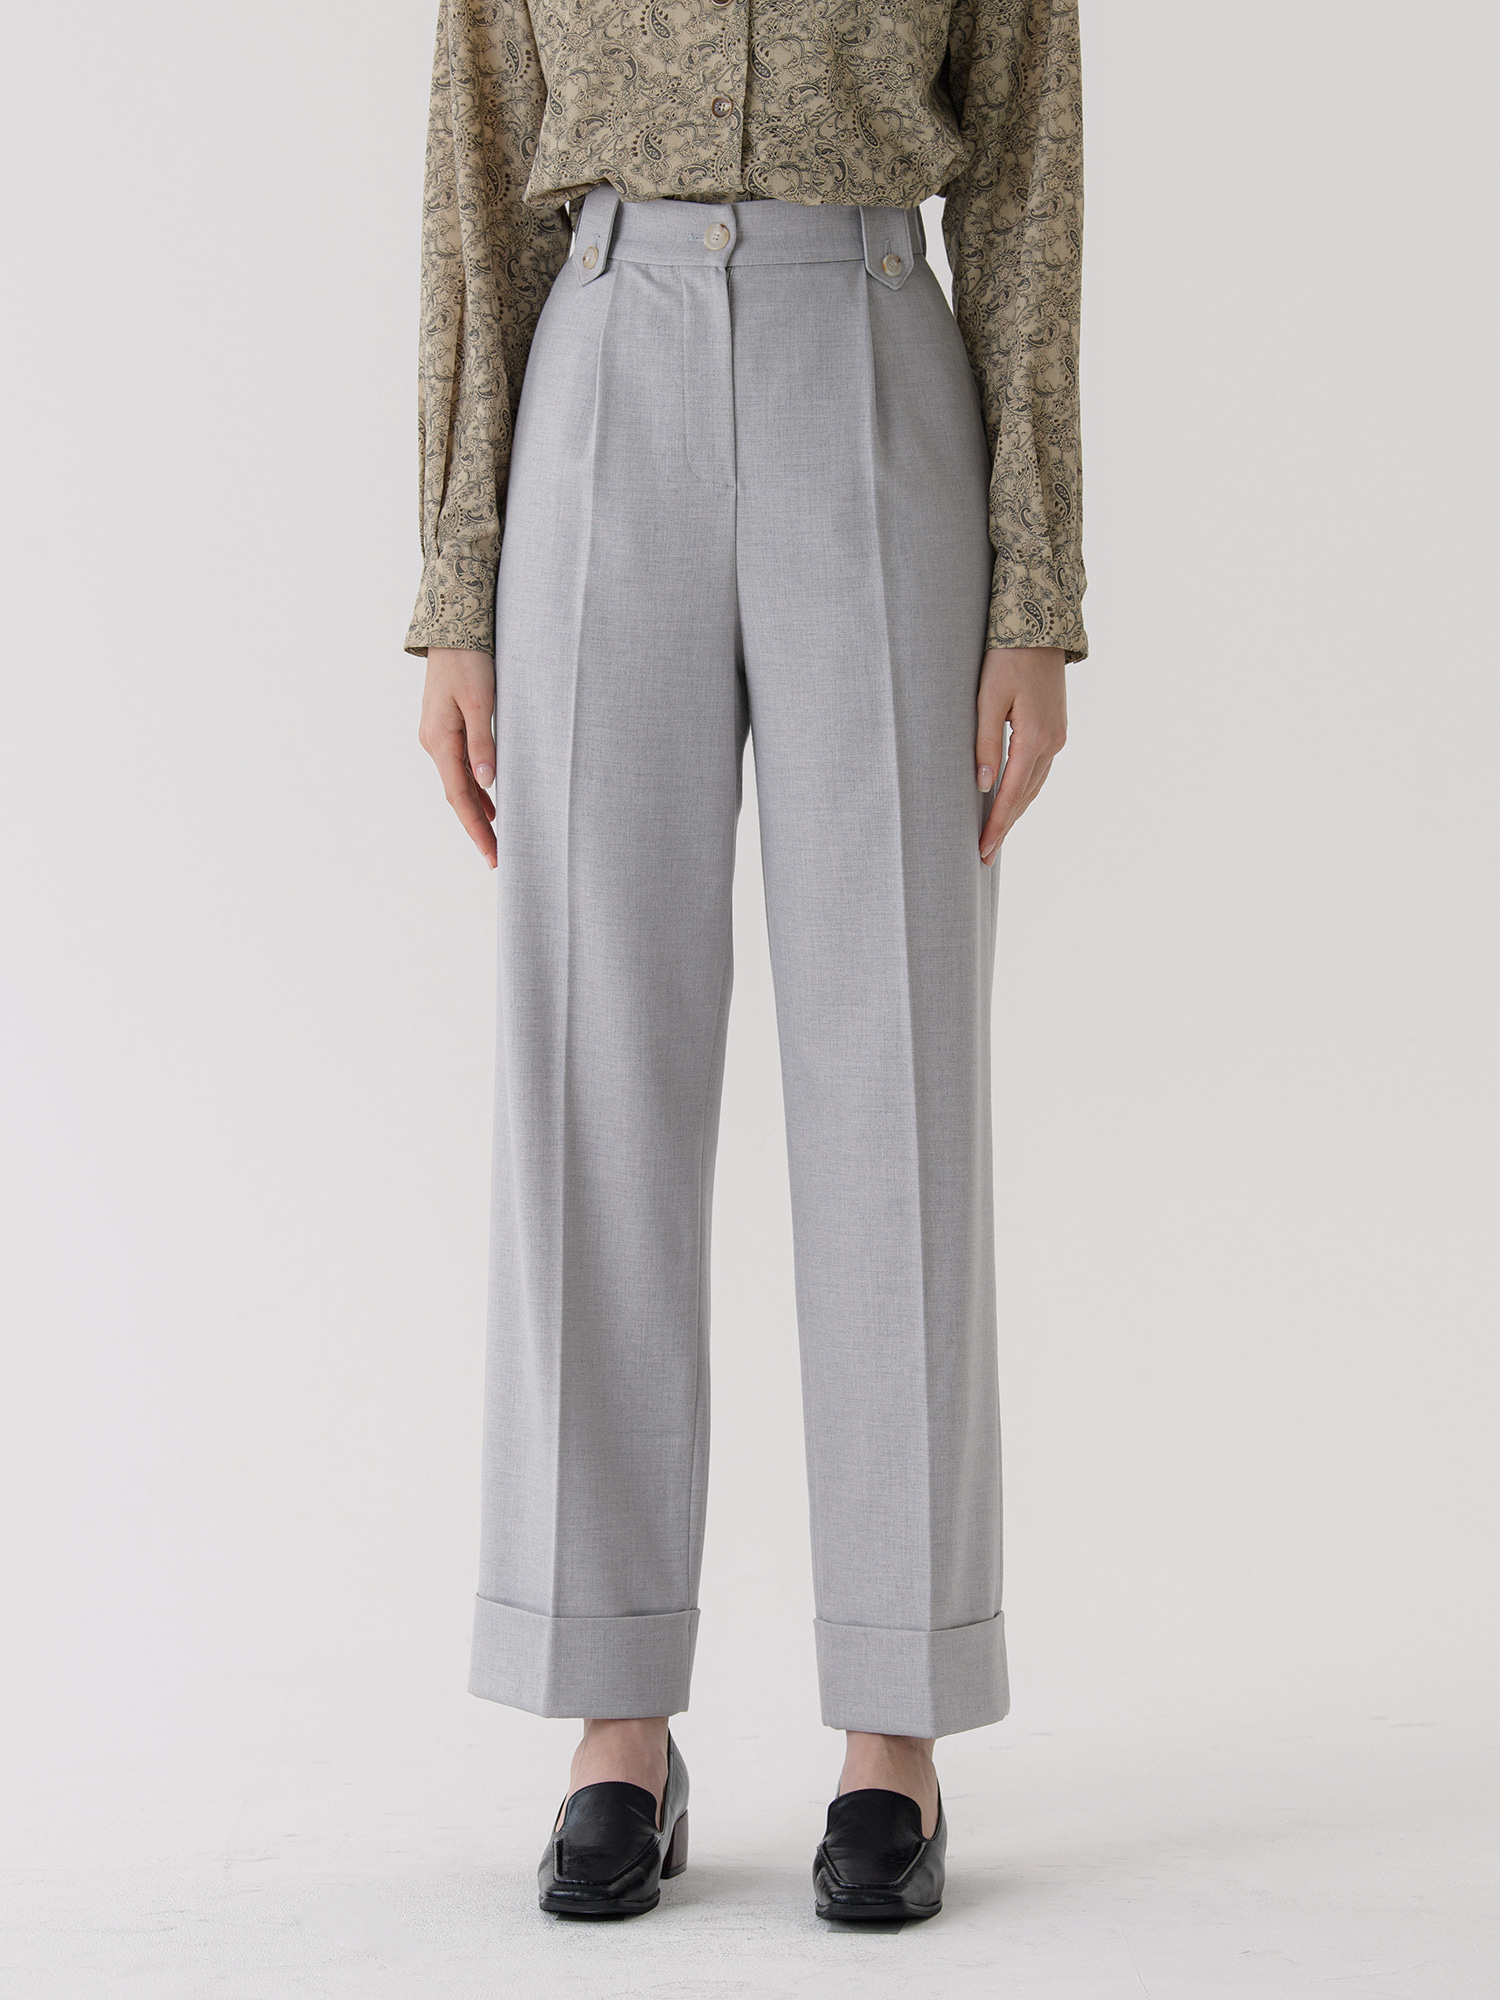 turn-up trouser (gray)